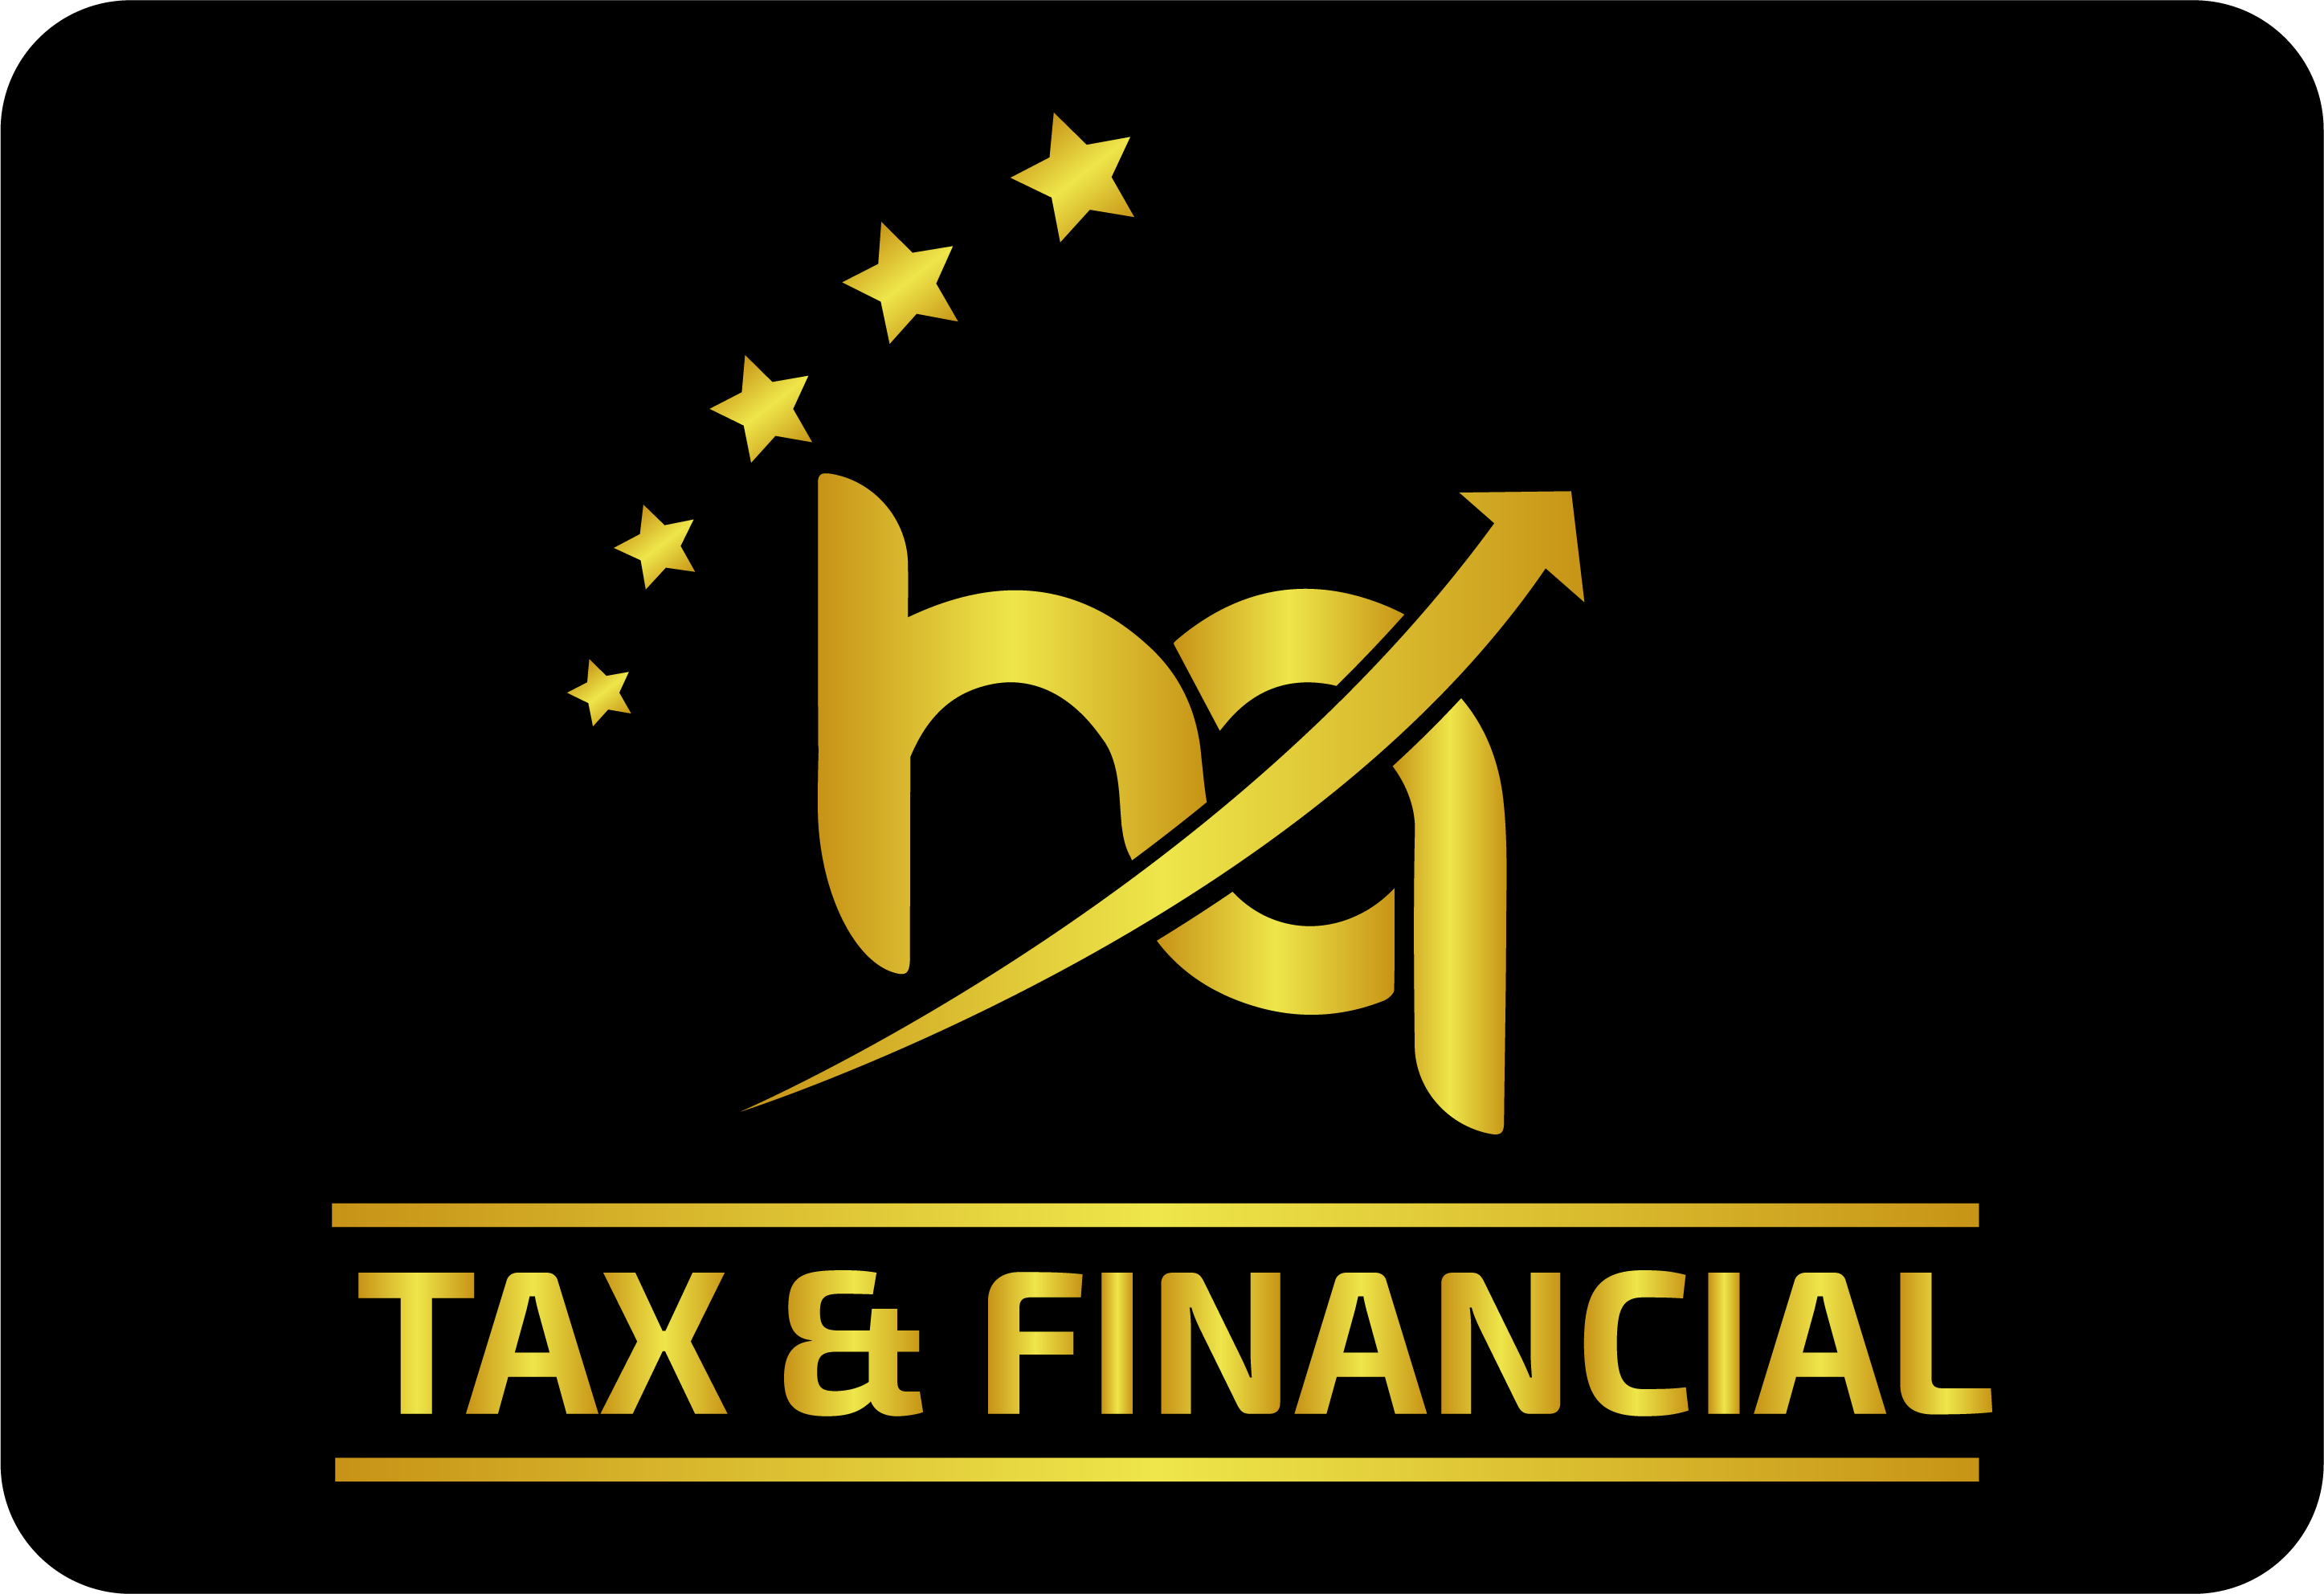 HQ Tax & Financial, Inc. of Illinois is the First Ever IRS ITIN Certifying Acceptance Agent for Pakistan